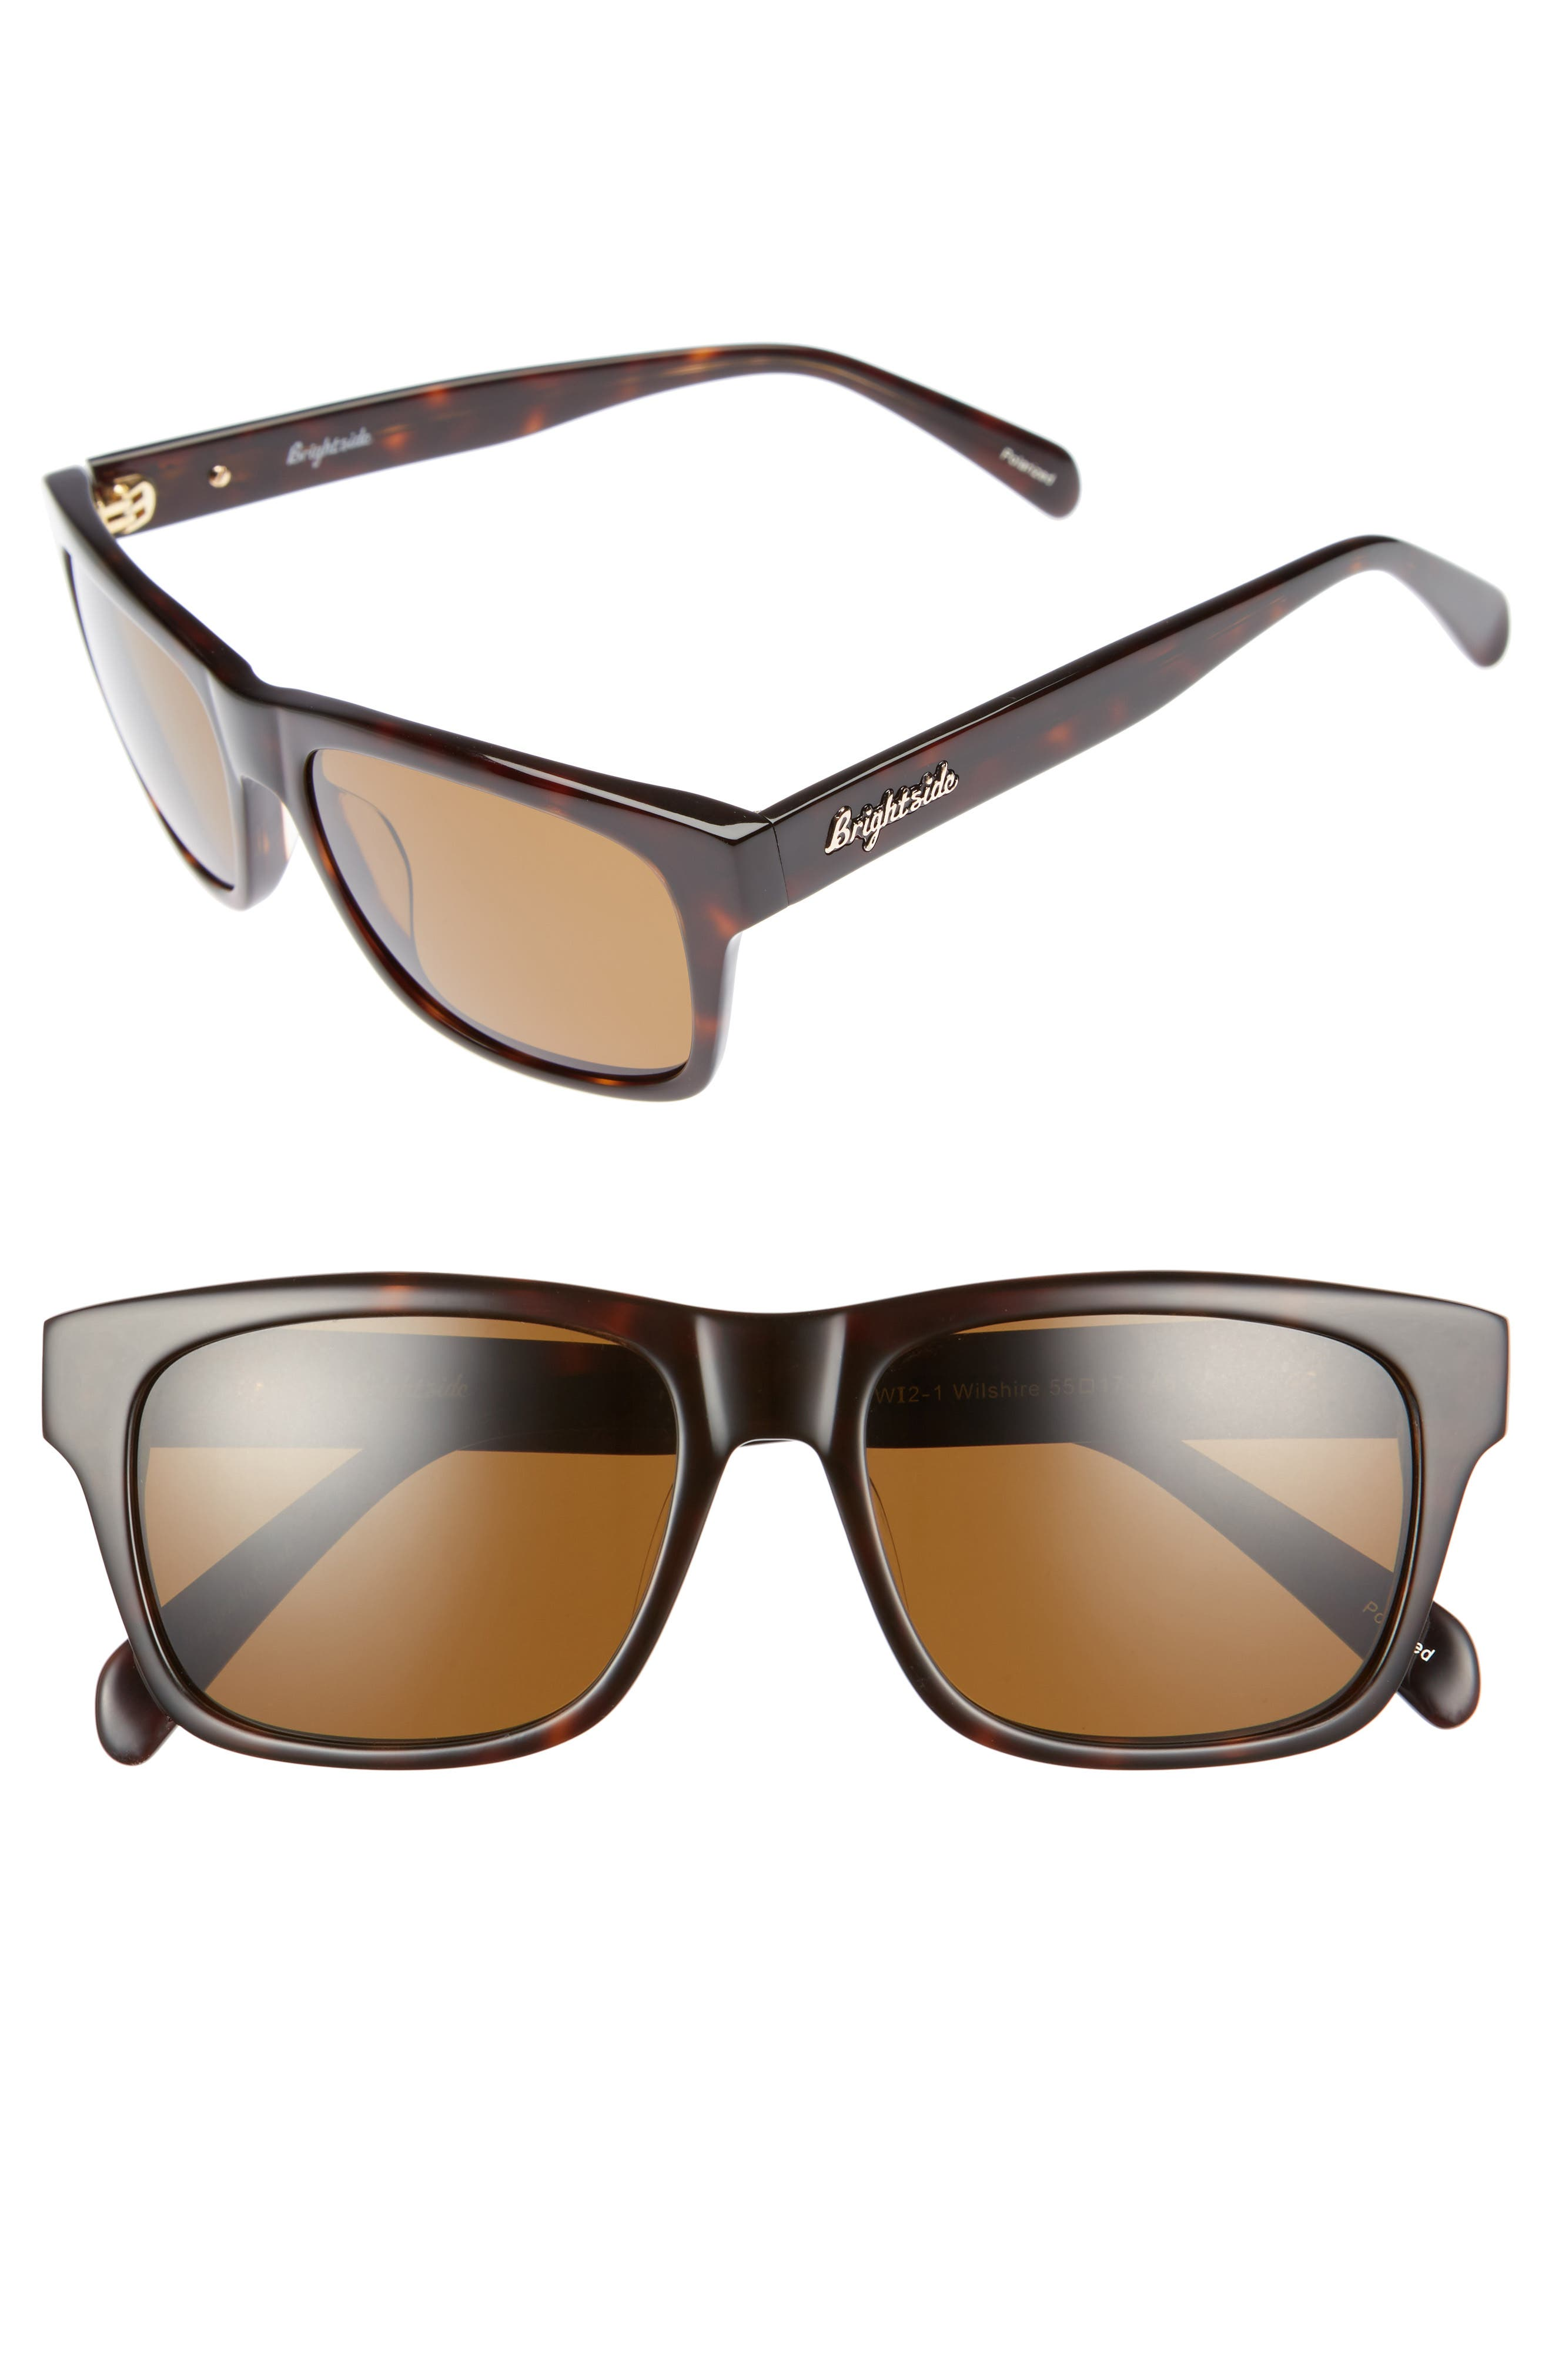 Brightside Wilshire 55mm Polarized Sunglasses